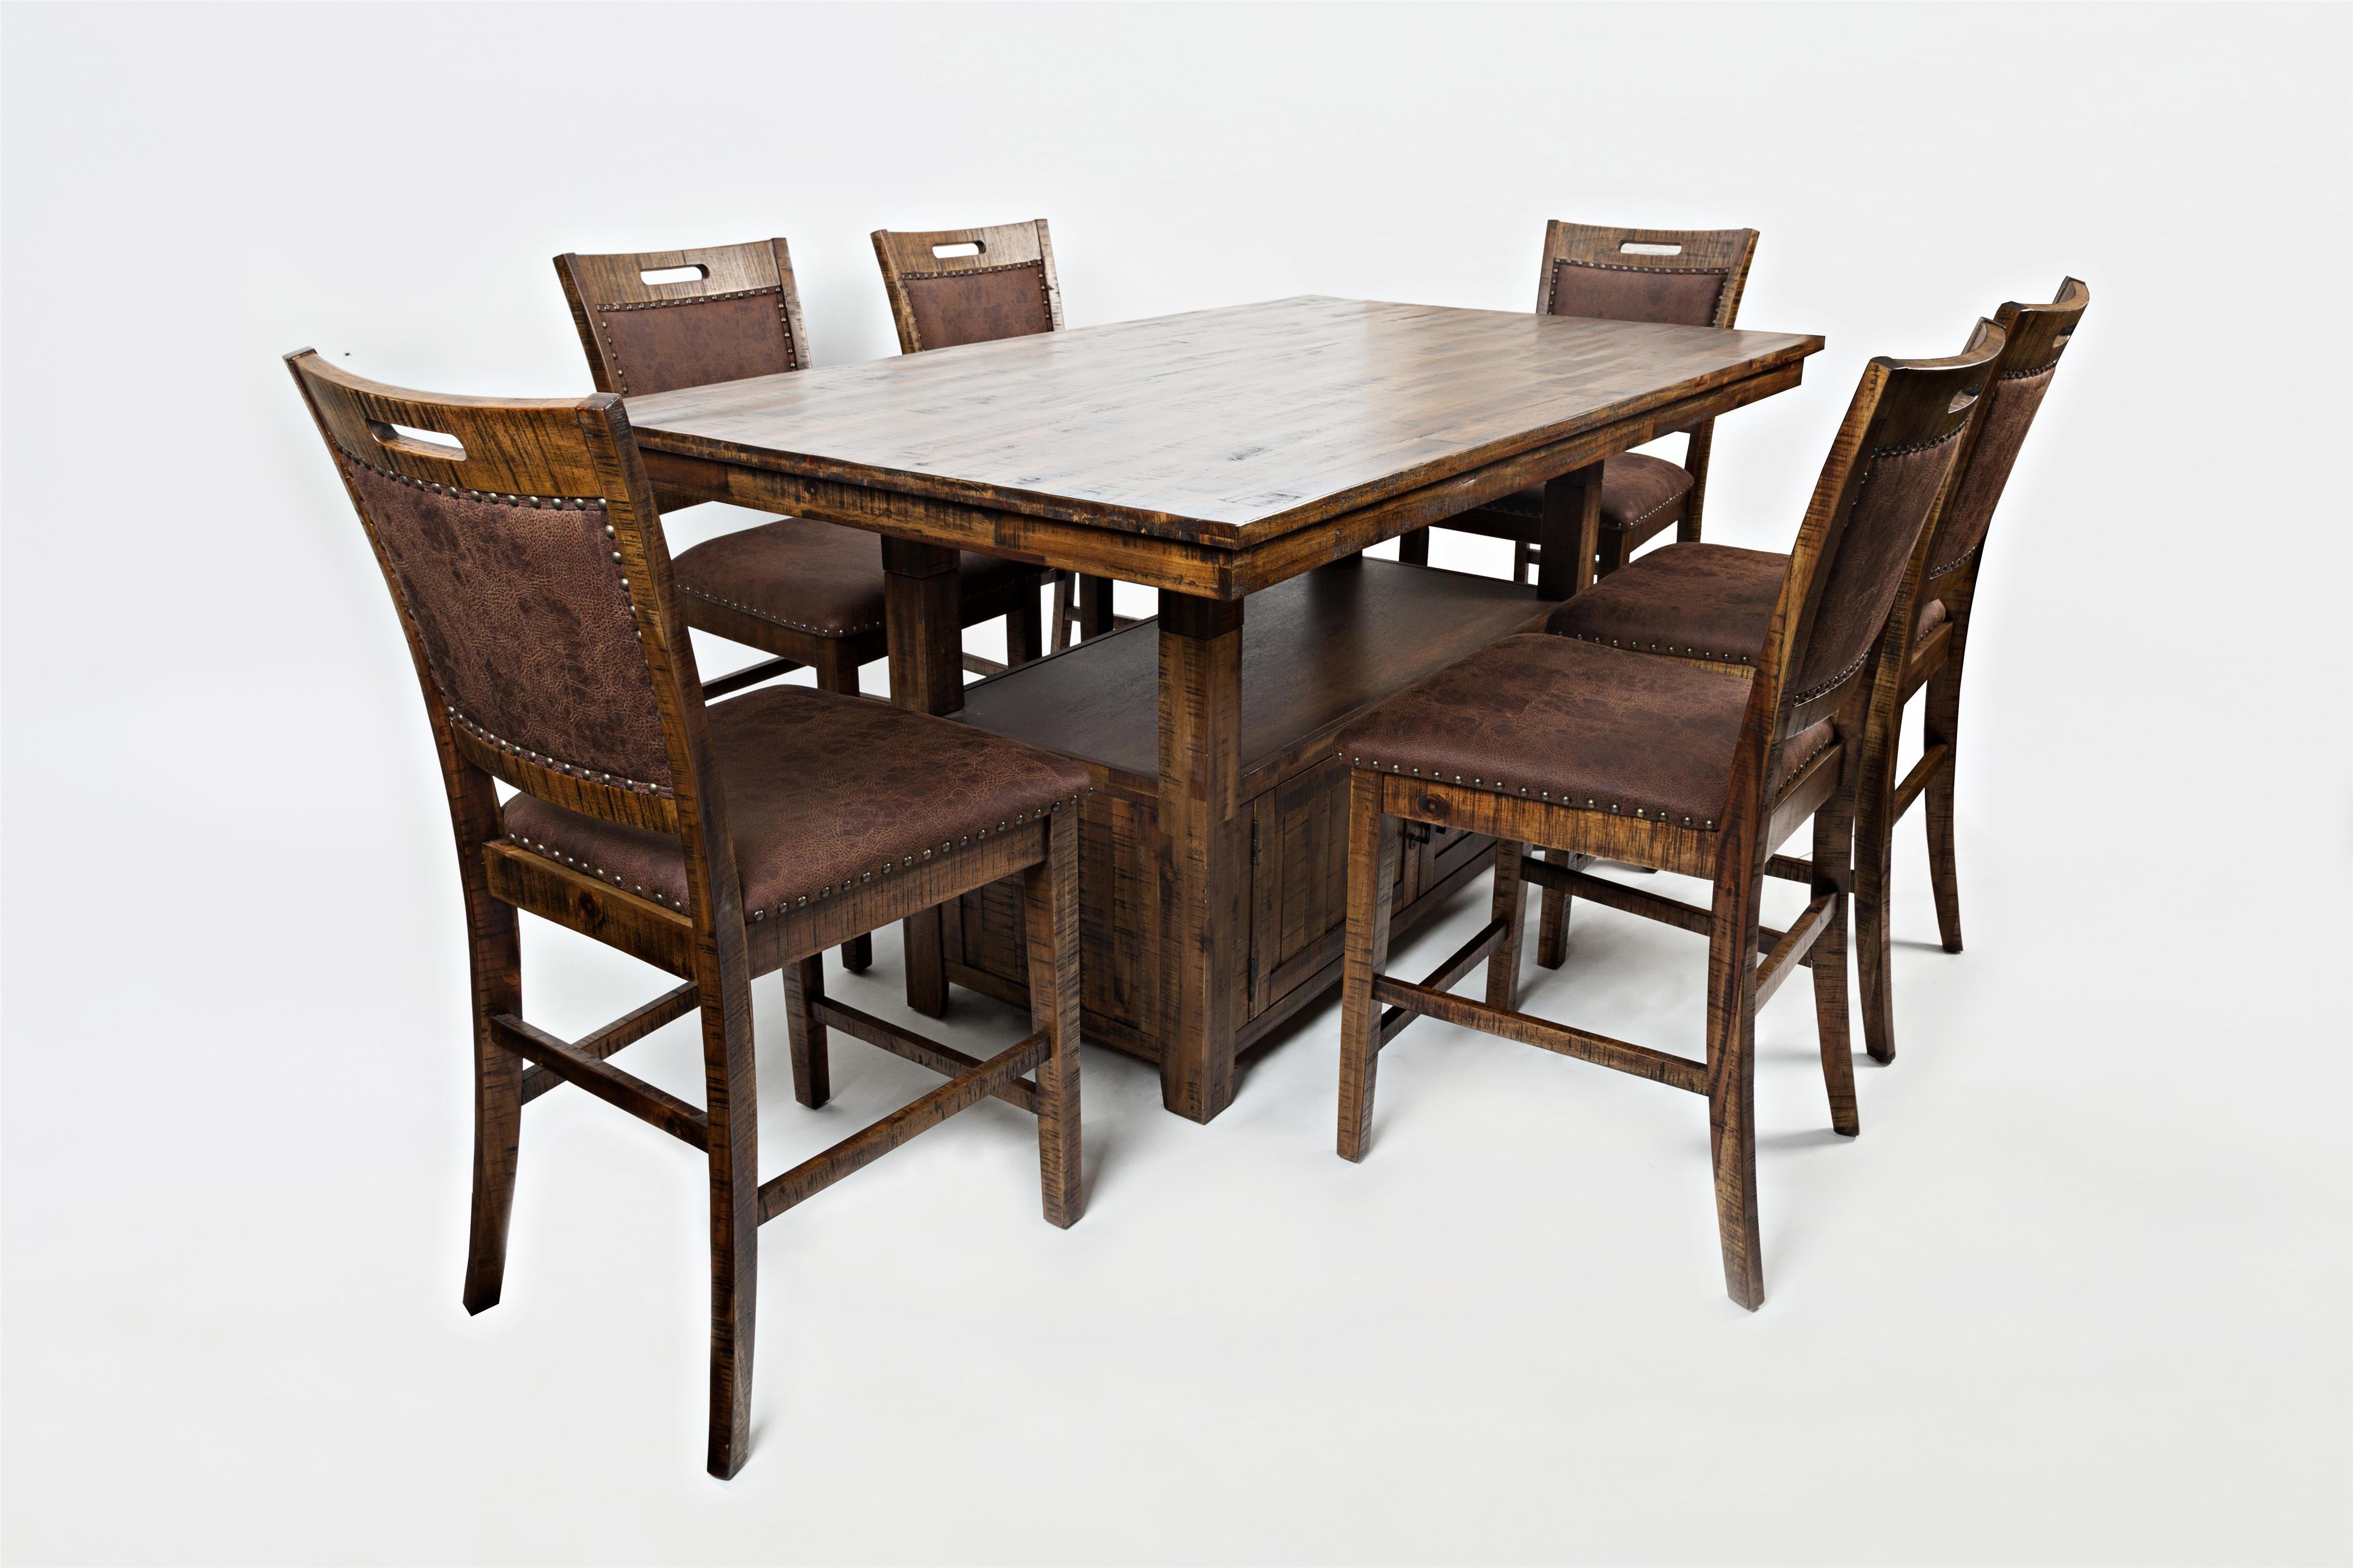 calvin high low table and chair set rotmans pub table and stool sets. Black Bedroom Furniture Sets. Home Design Ideas